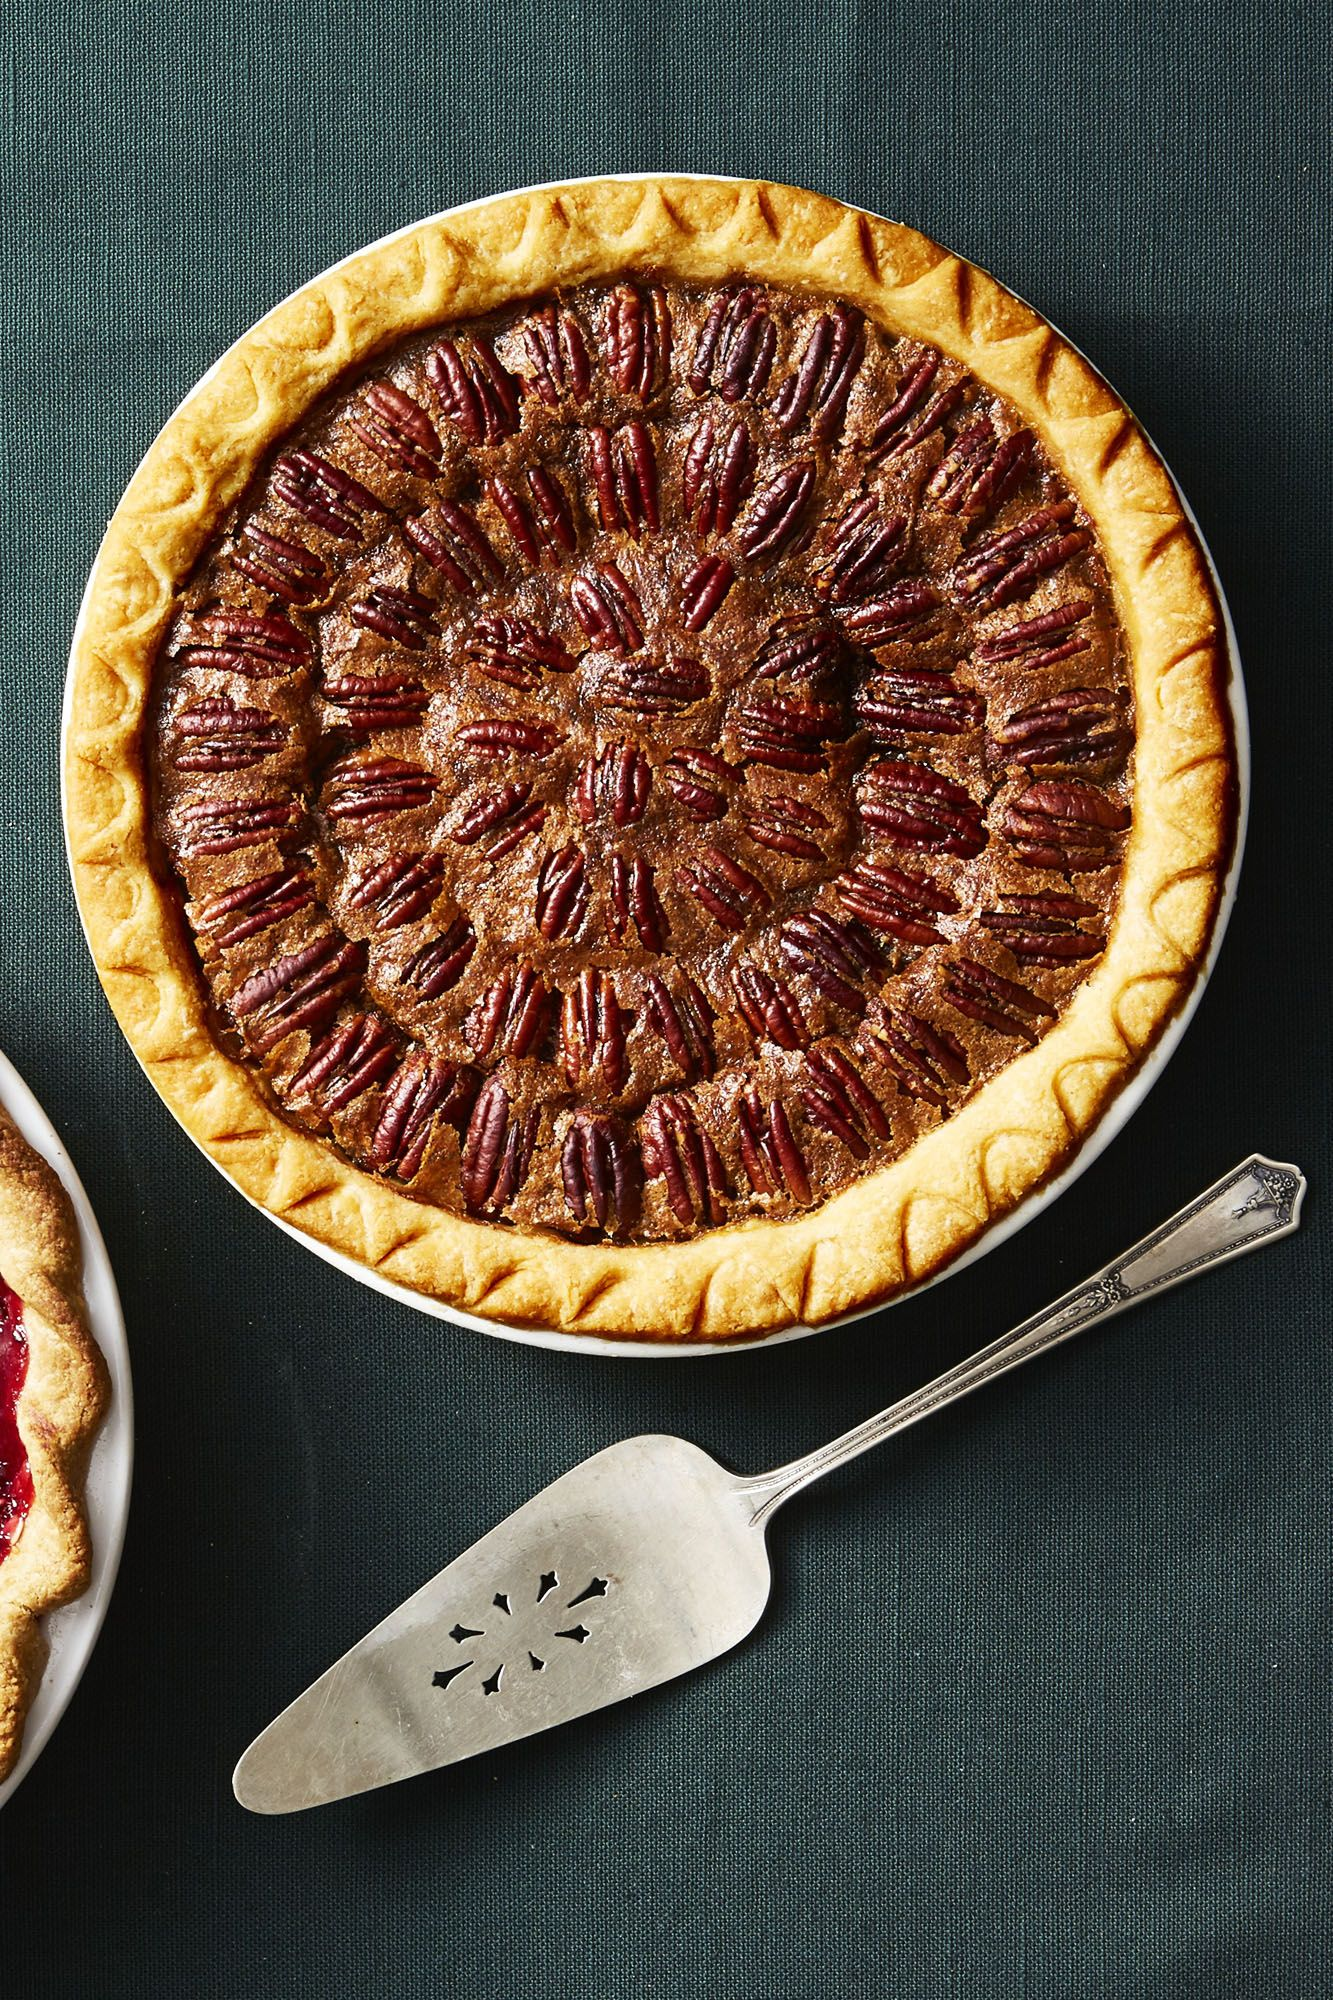 Best Brown Sugar Pecan Pie Recipe How To Make Brown Sugar Pecan Pie